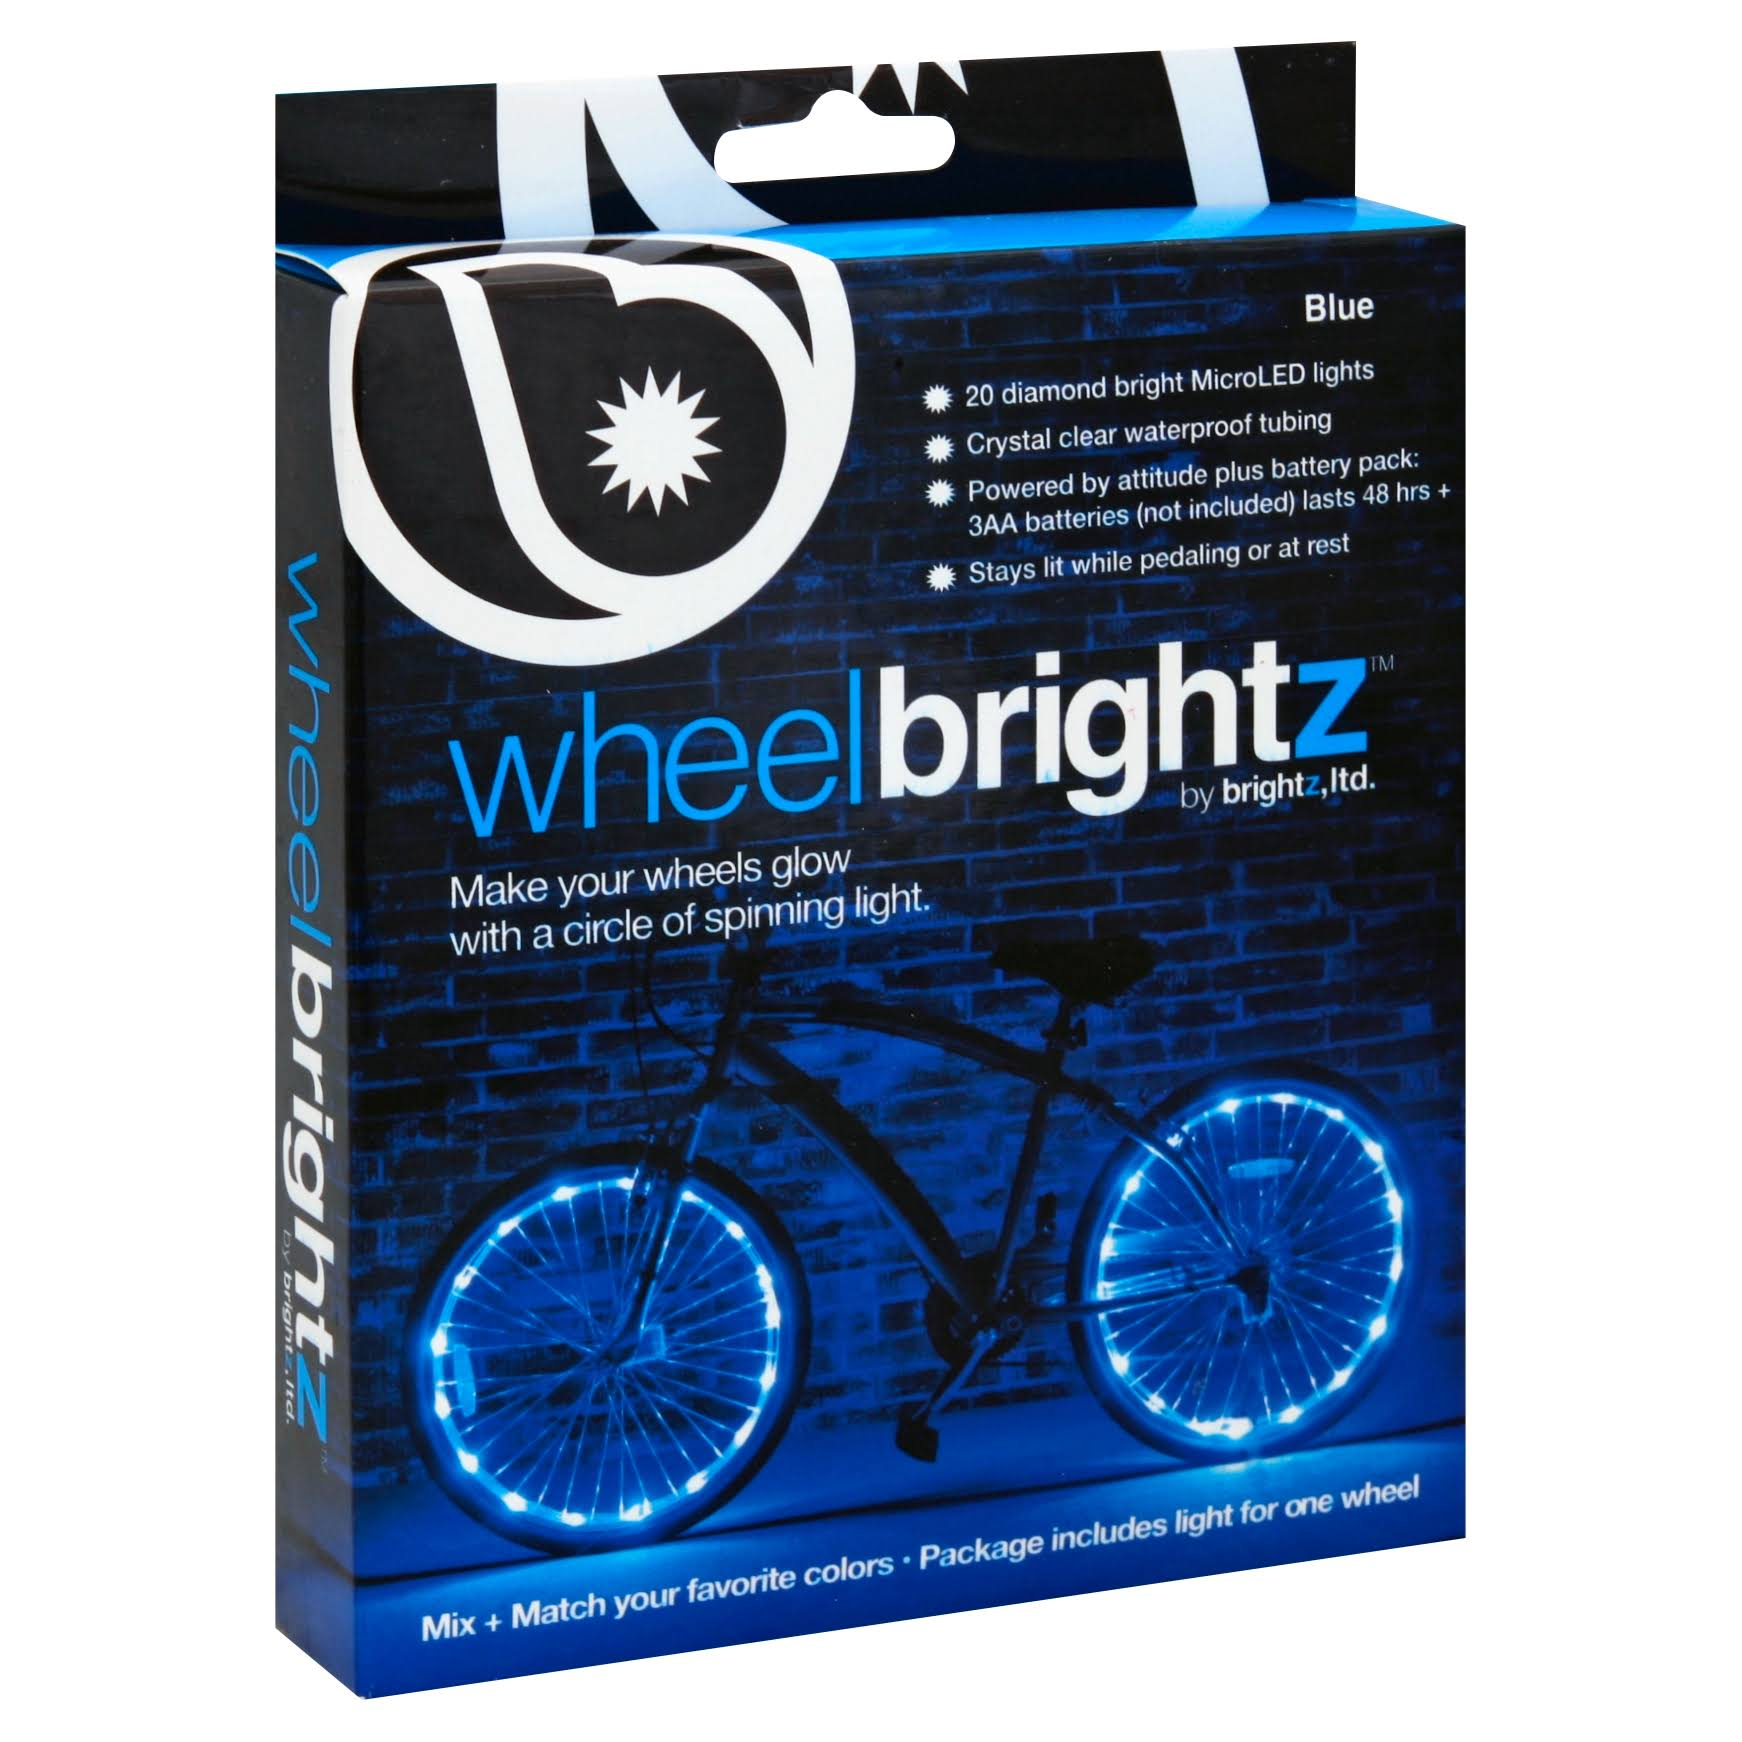 Brightz Ltd. Wheel Brightz LED Bicycle Light - Blue